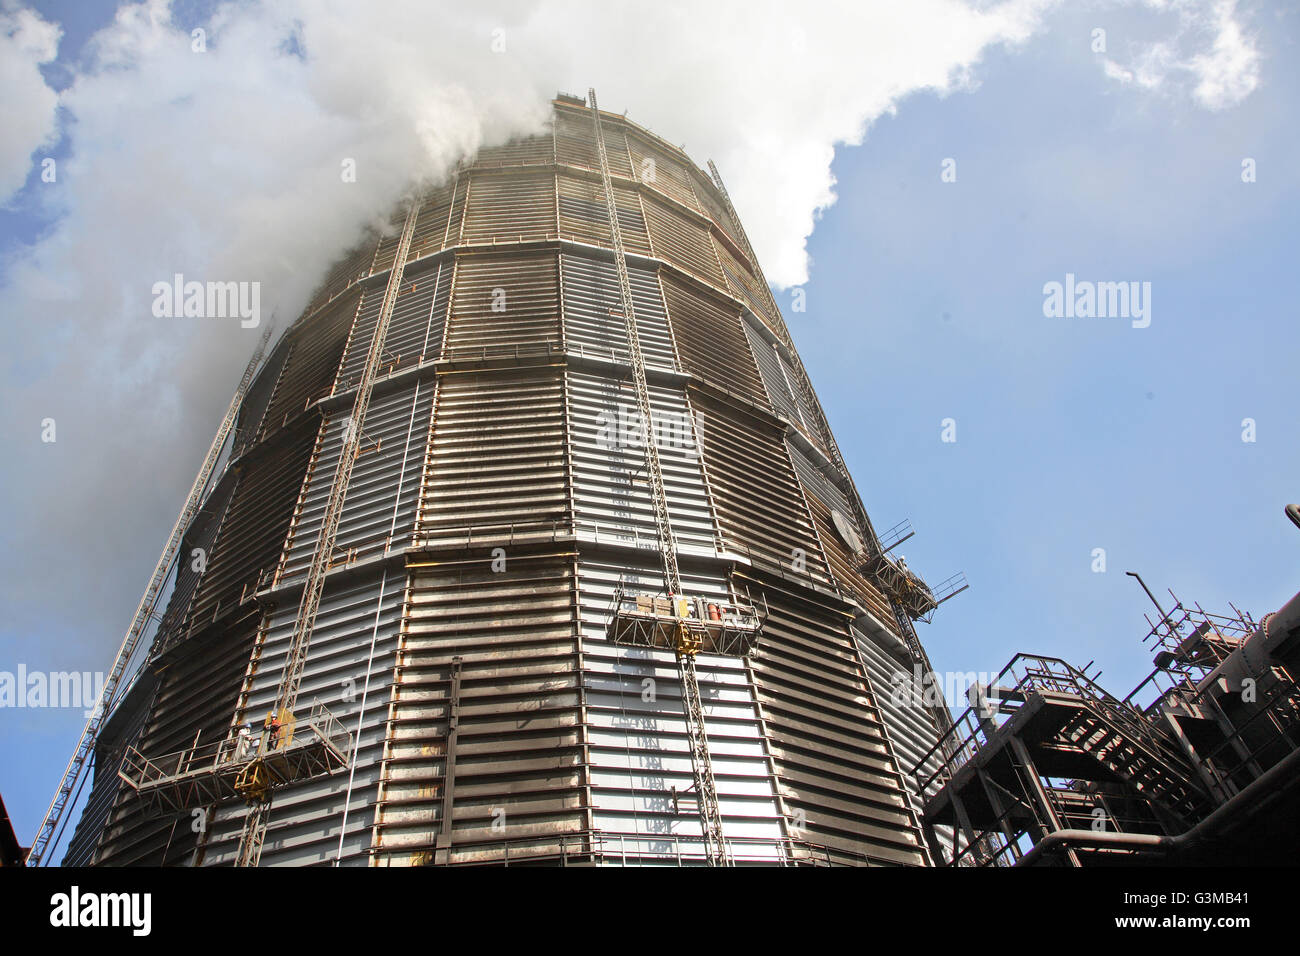 Steam engulfs the top of a steel gas holder at Redcar Steelworks. Taken in 2008 before closure of the plant. - Stock Image